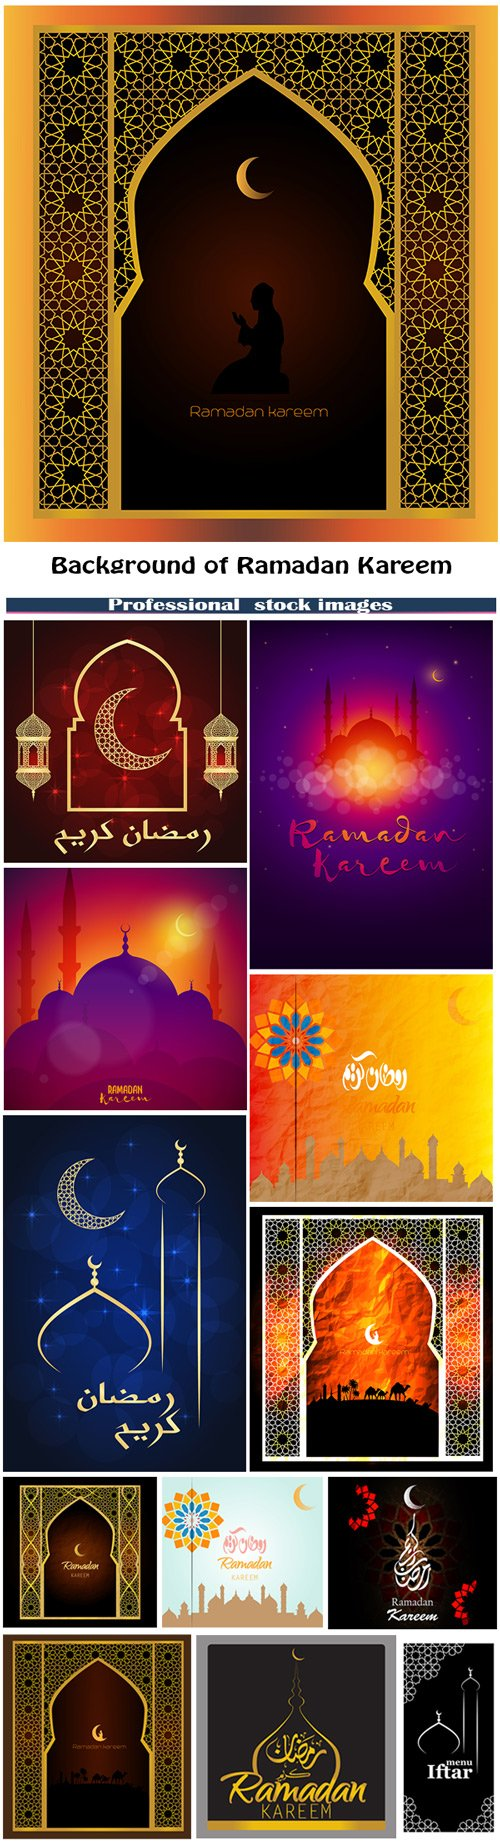 Background of Ramadan Kareem